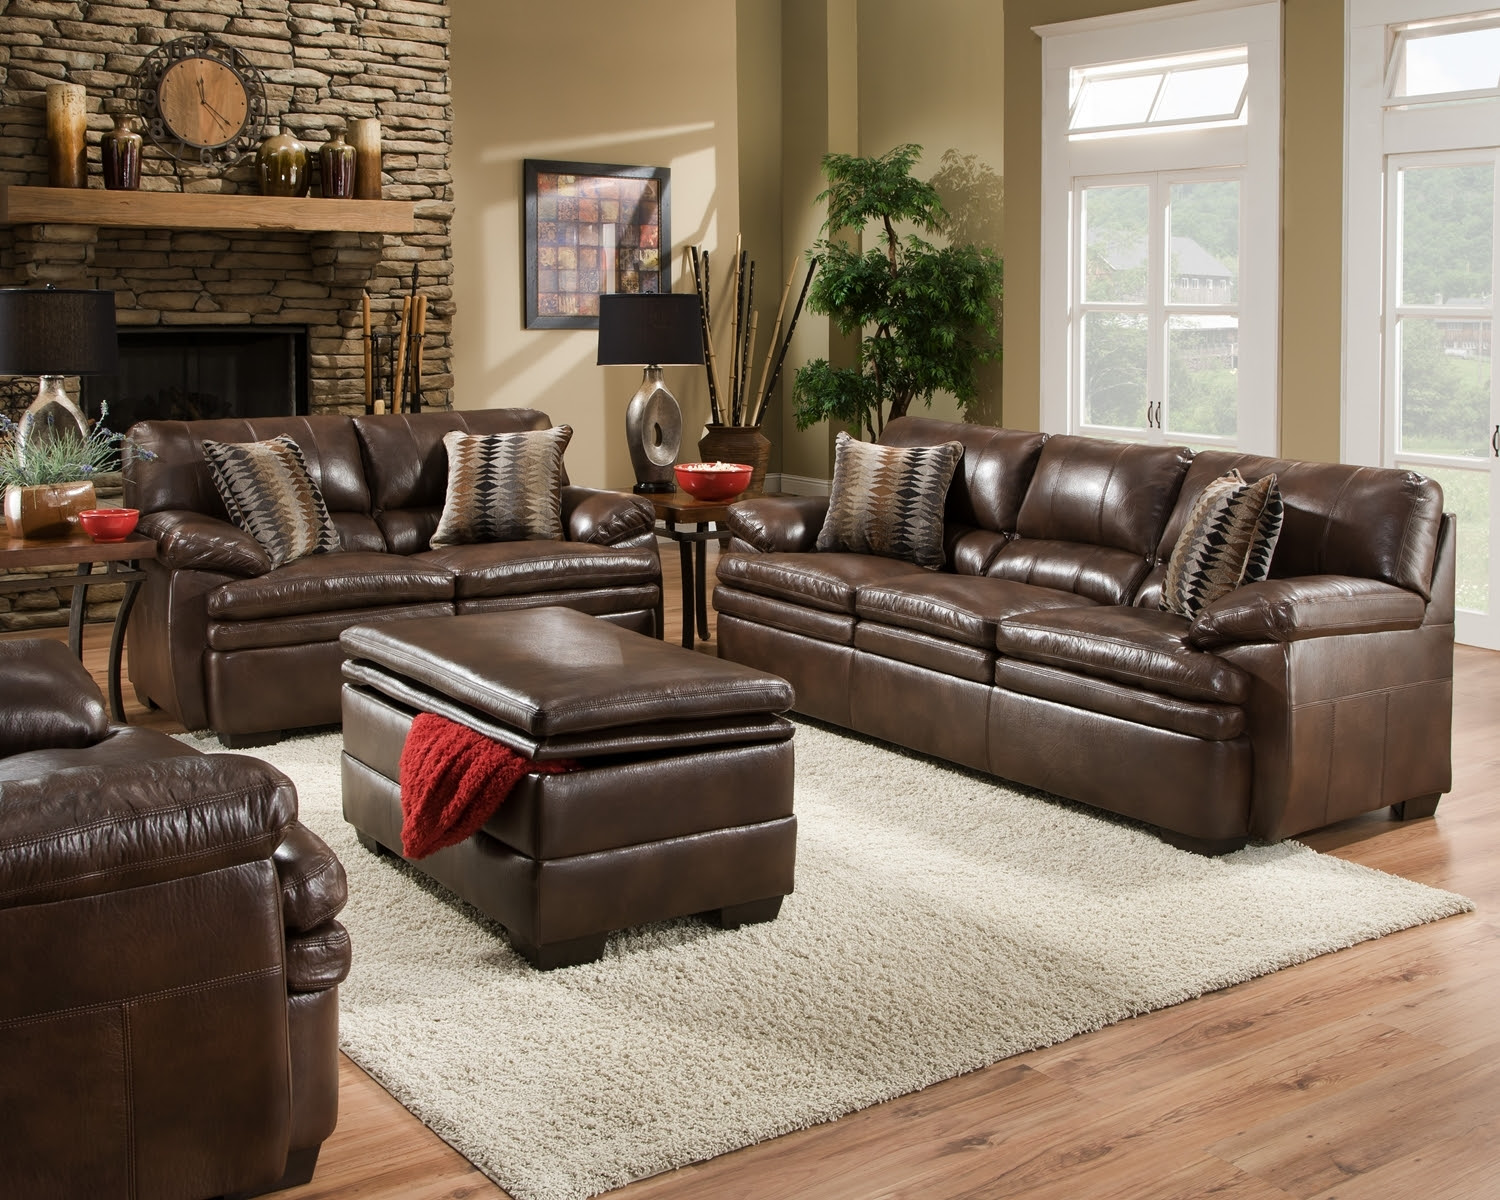 Brown Bonded Leather Sofa Set Casual Living Room Furniture ...